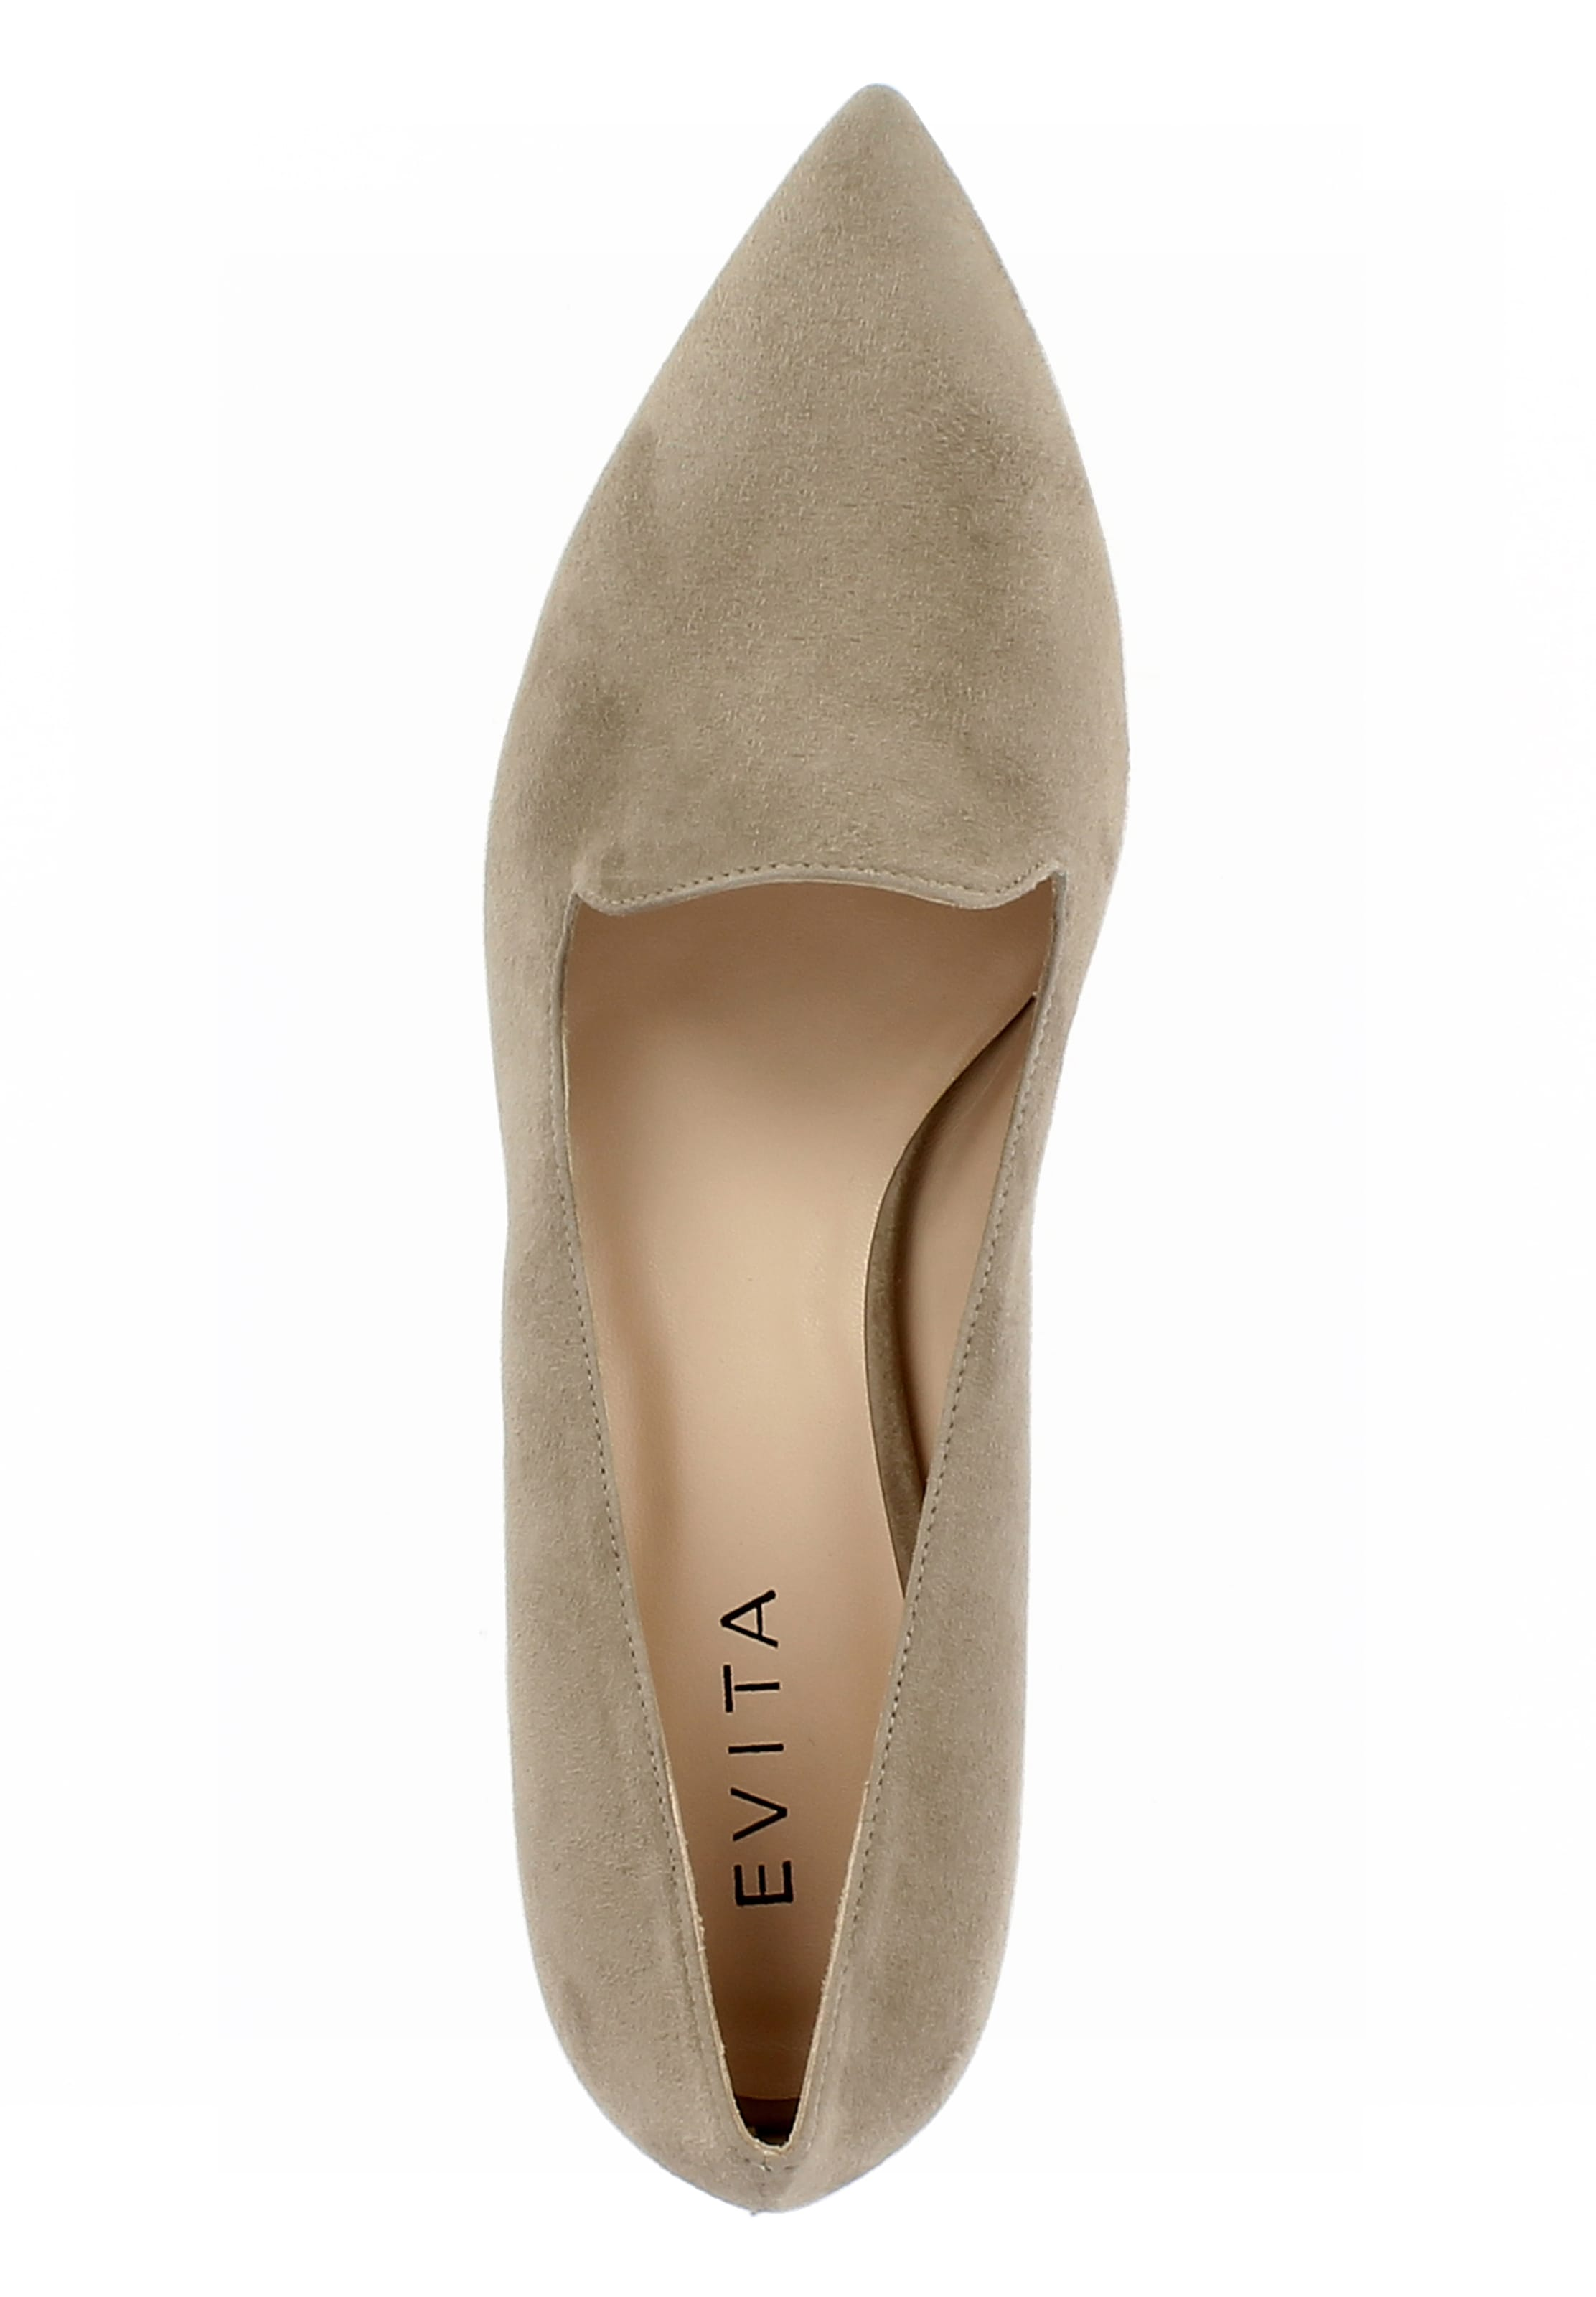 Beige Evita Damen In Slipper 'franca' wn0kOP